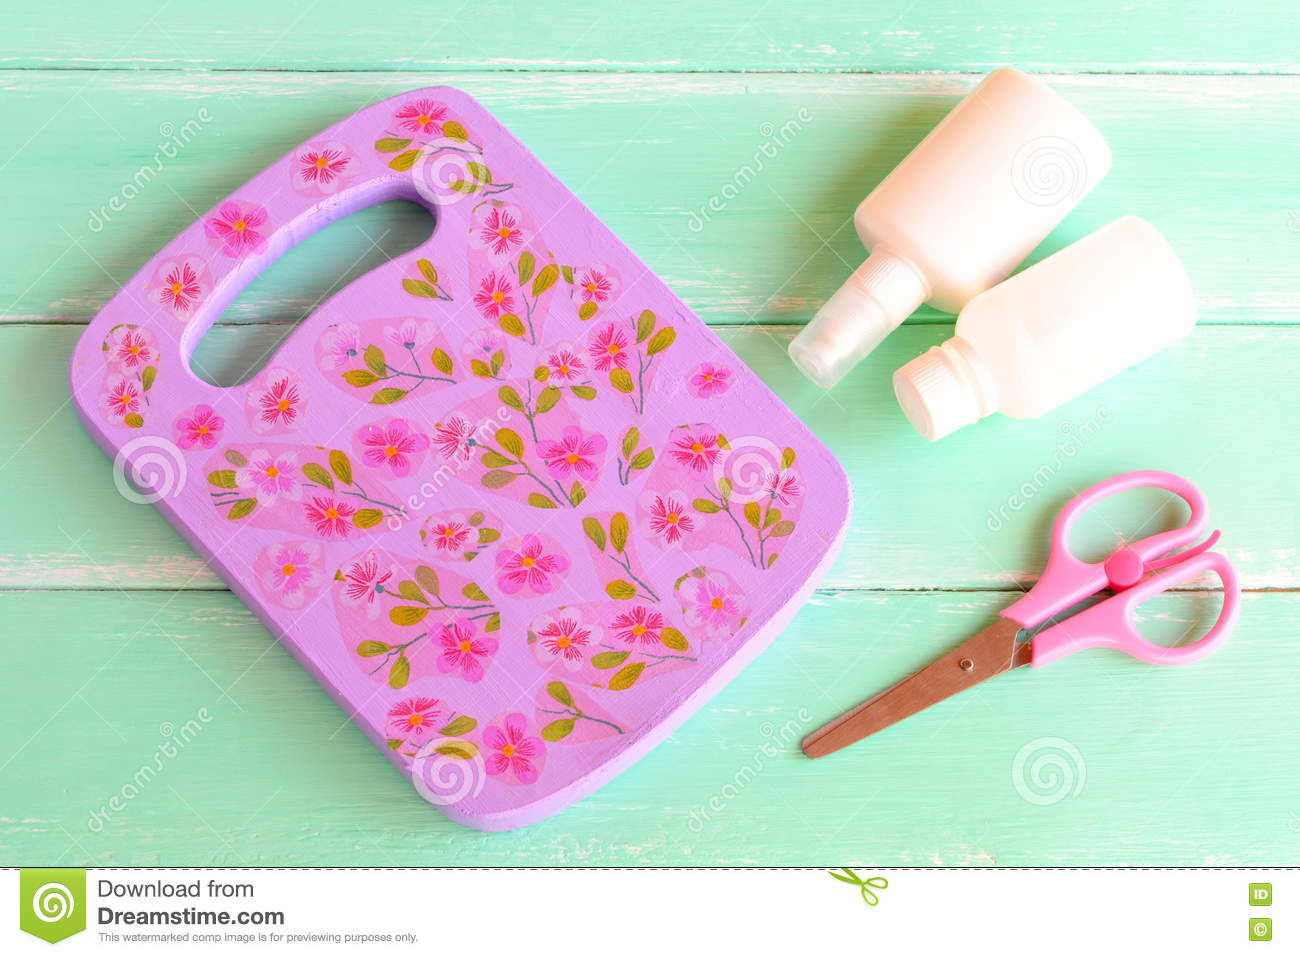 Decoupage Cutting Board Kitchen Wall Decoration Idea For Painting And Decoupage On A Chopping Board Stock Image Image Of Kids Color 73844075